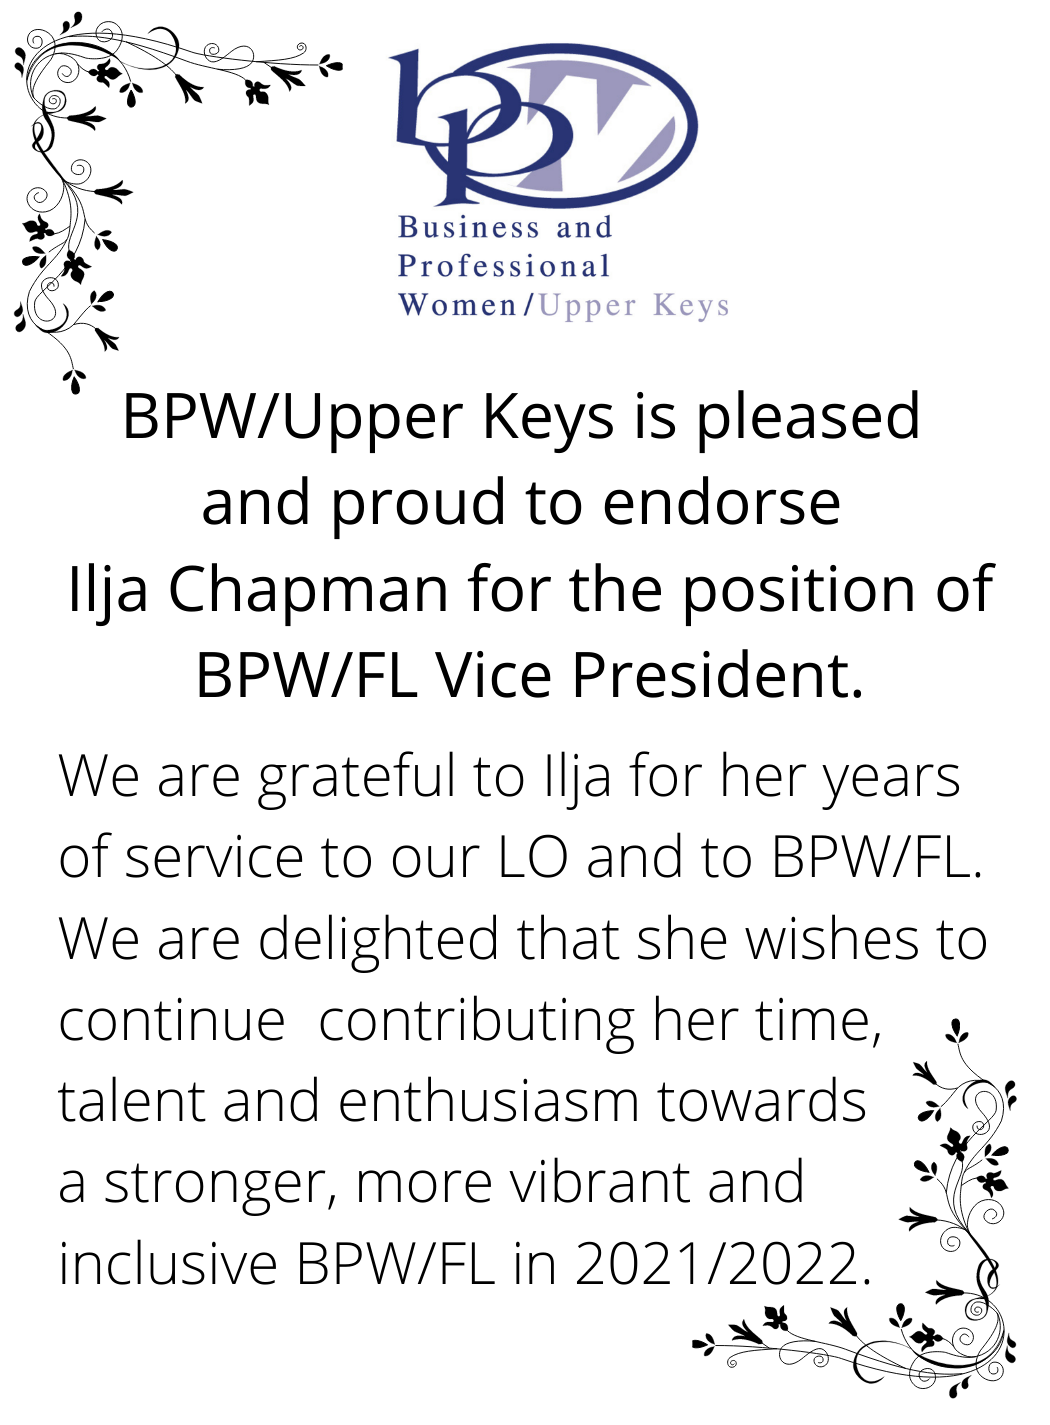 UPPER KEYS ENDORSES ILJA CHAPMAN!